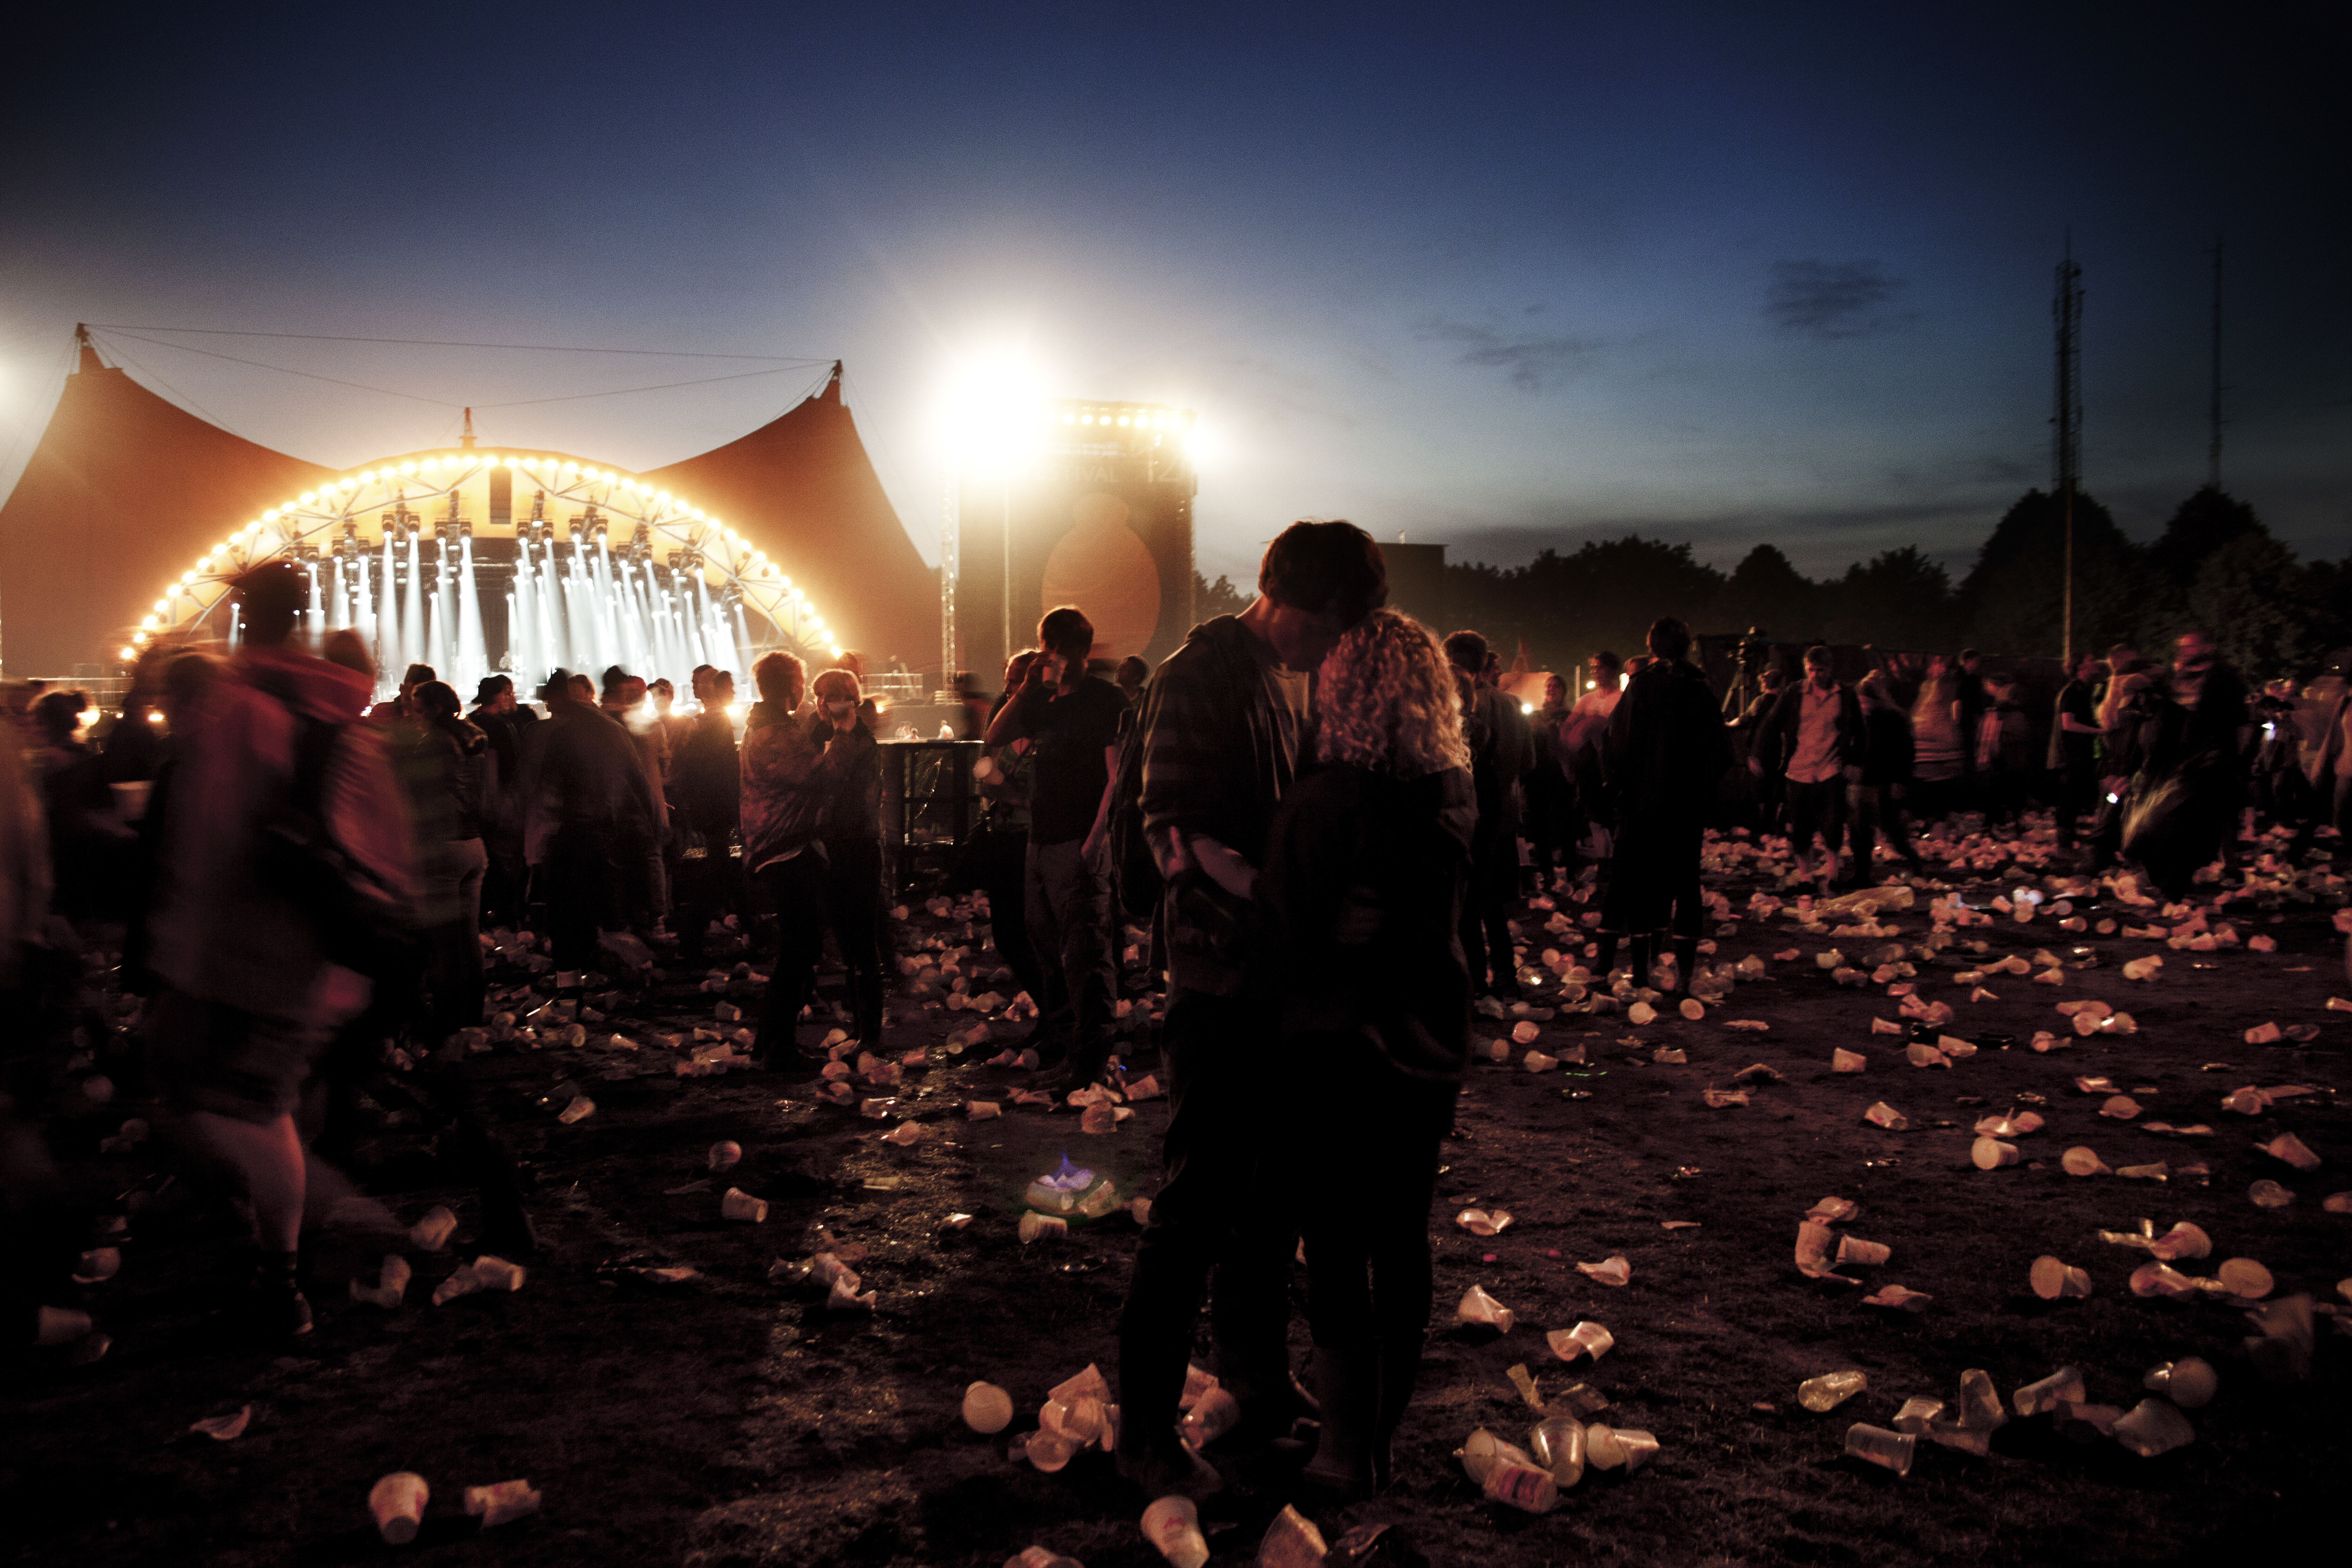 RoskildeFestival_HelenaLundquist_1